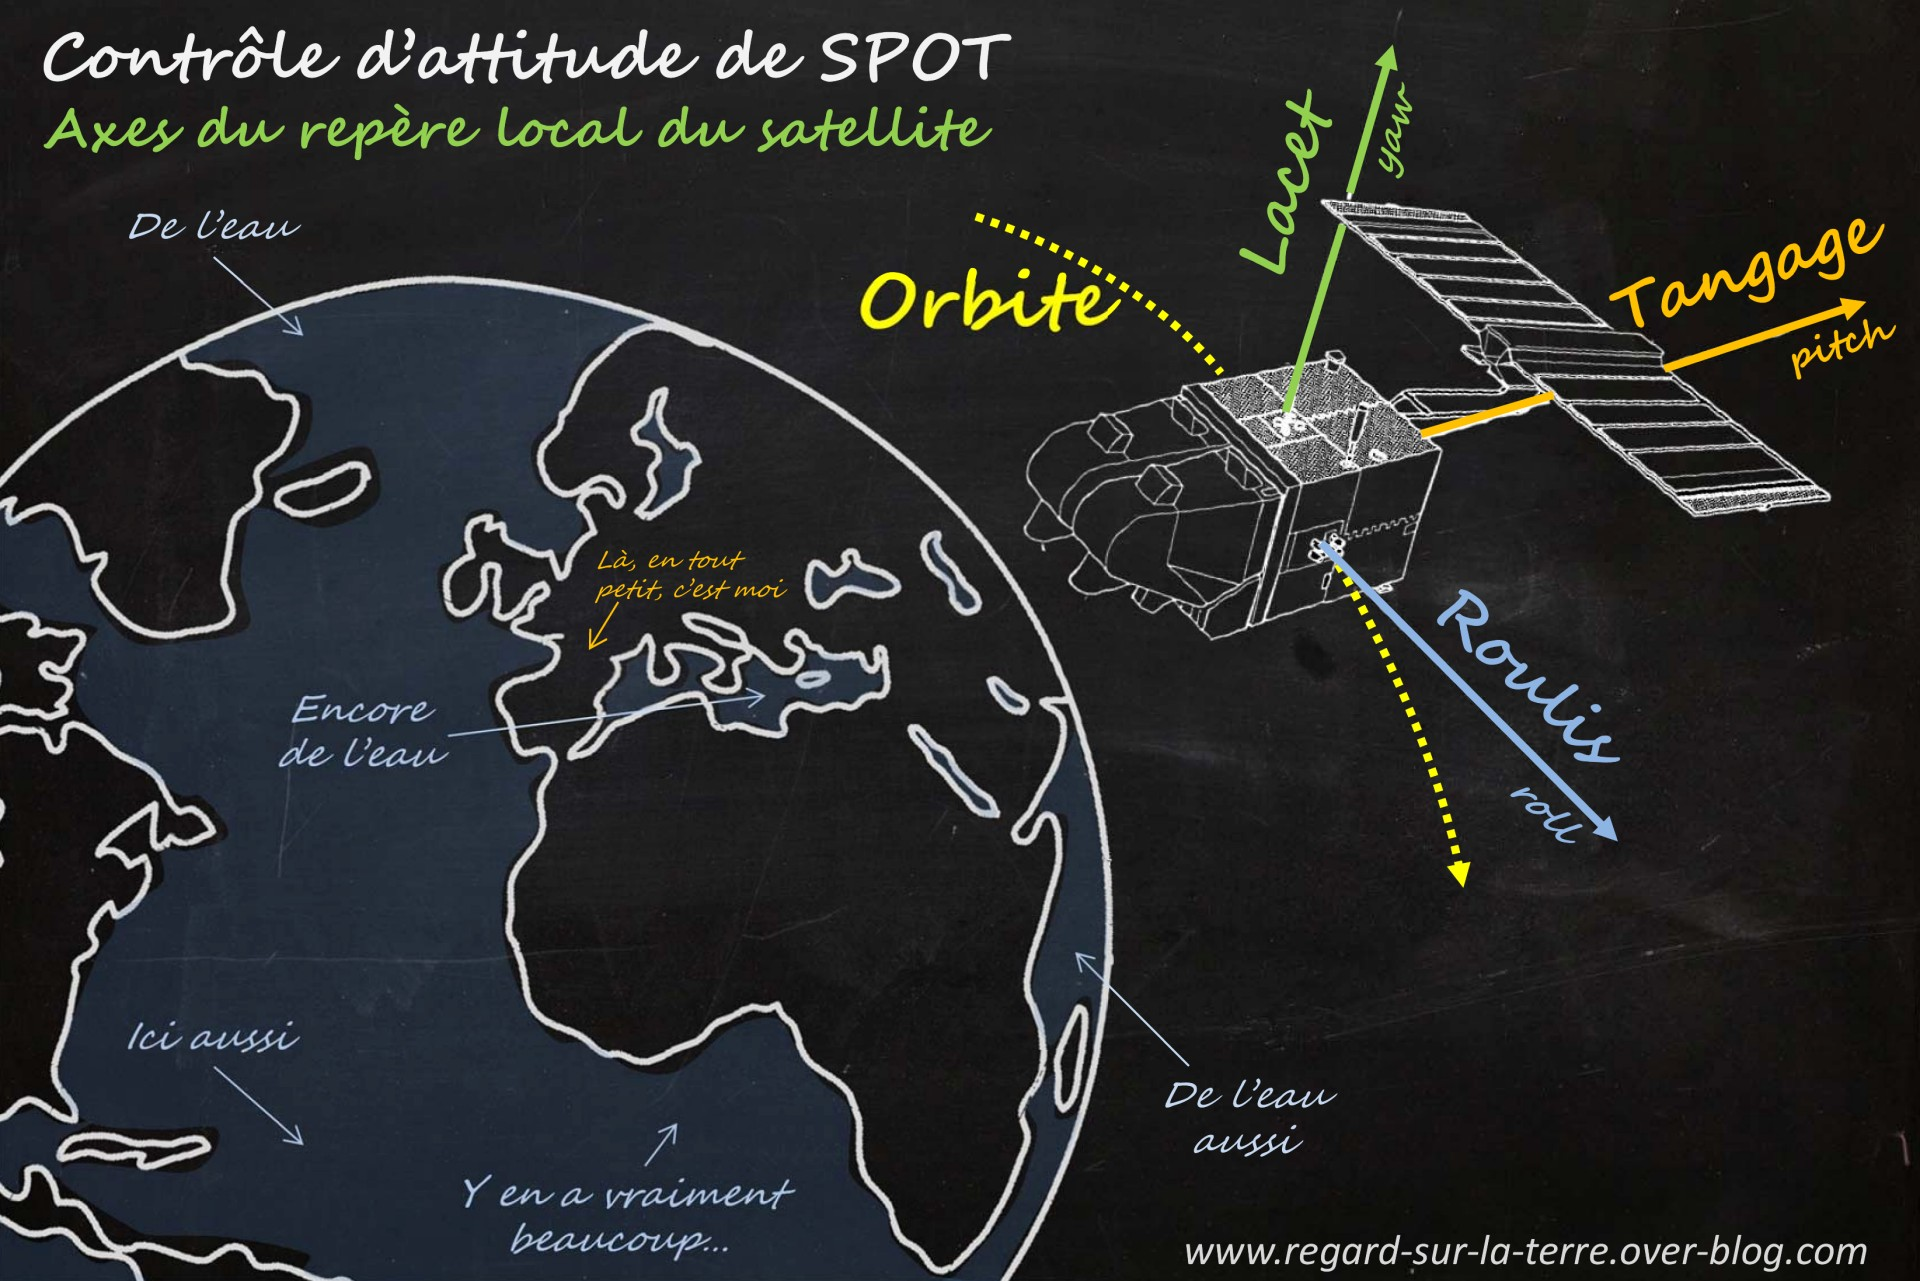 Satellite - Orbite - Repère local - Roulis - Tangage - Lacet - Roll - Pitch - Yaw